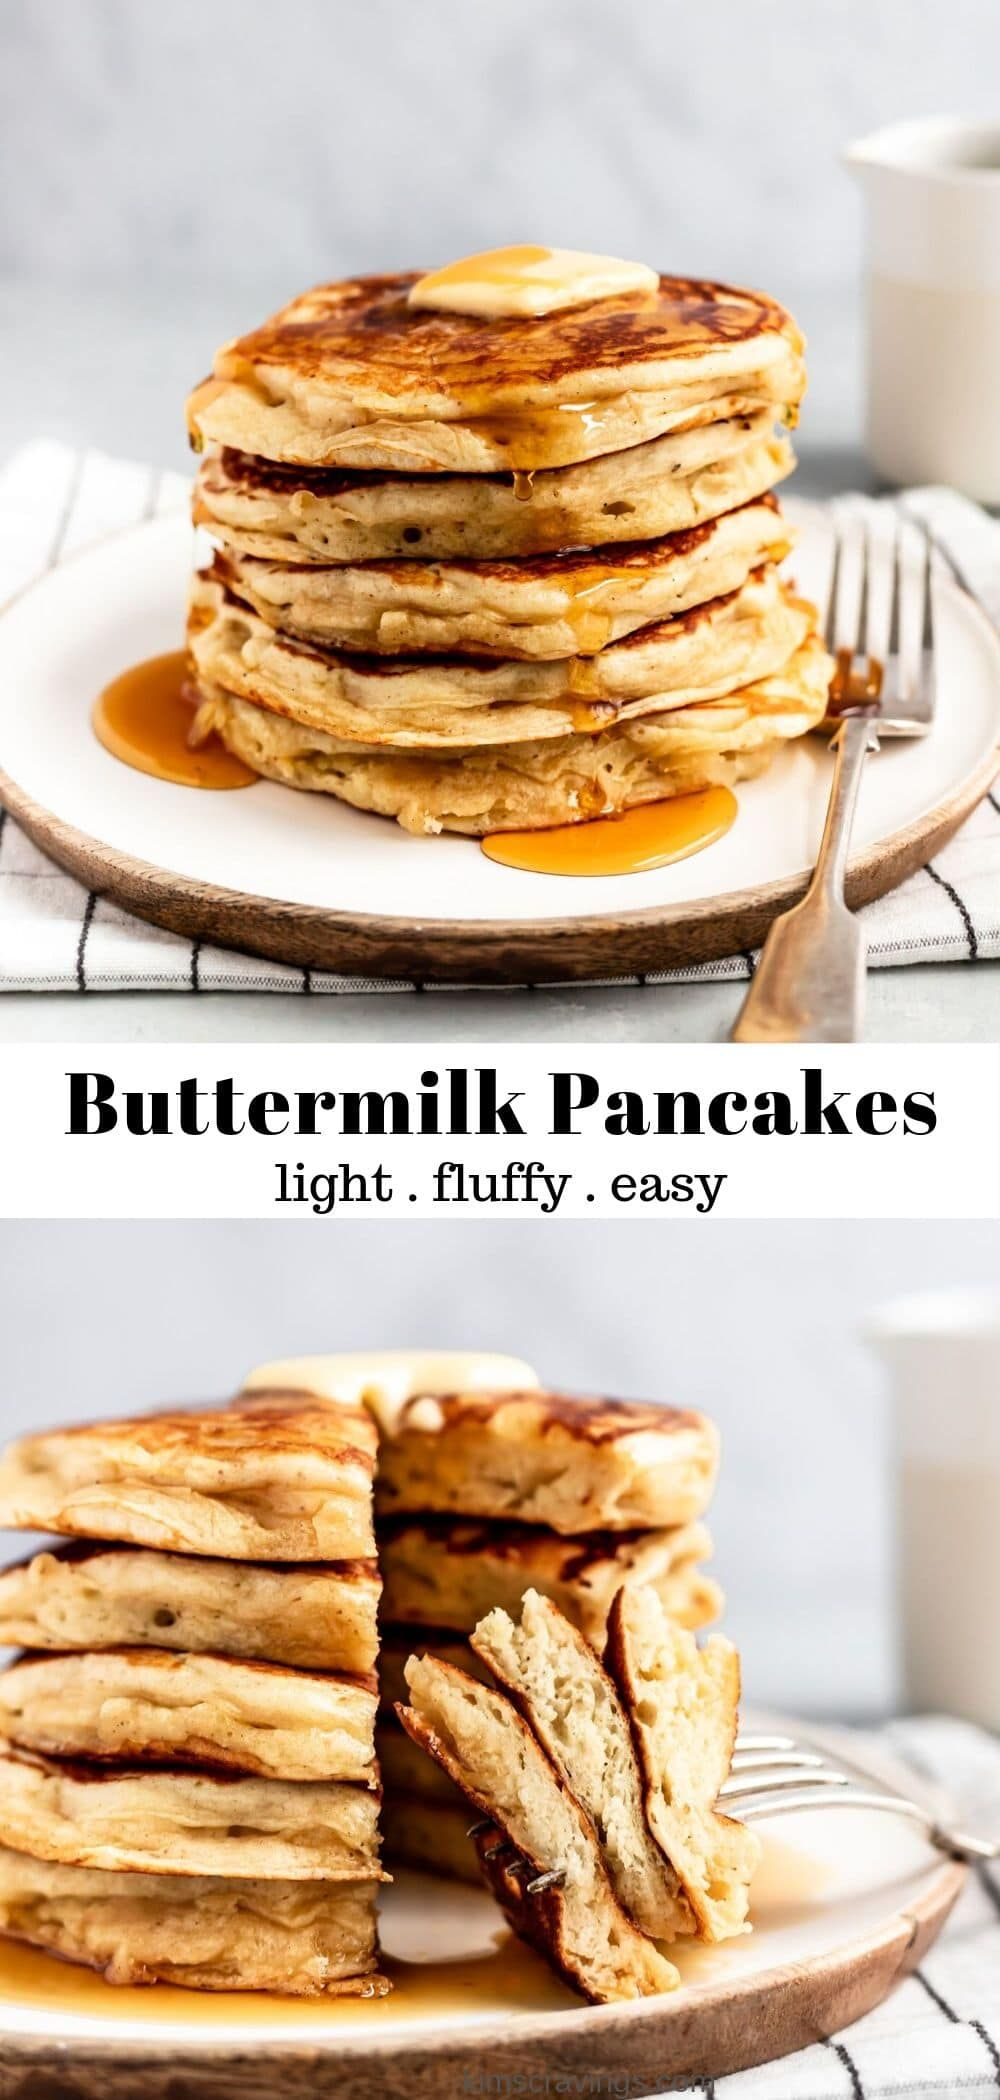 This Recipe For The Best Buttermilk Pancakes Is A Breakfast Delight Of Light Fluffy And Absol Buttermilk Pancakes Buttermilk Recipes Pancake Recipe Buttermilk